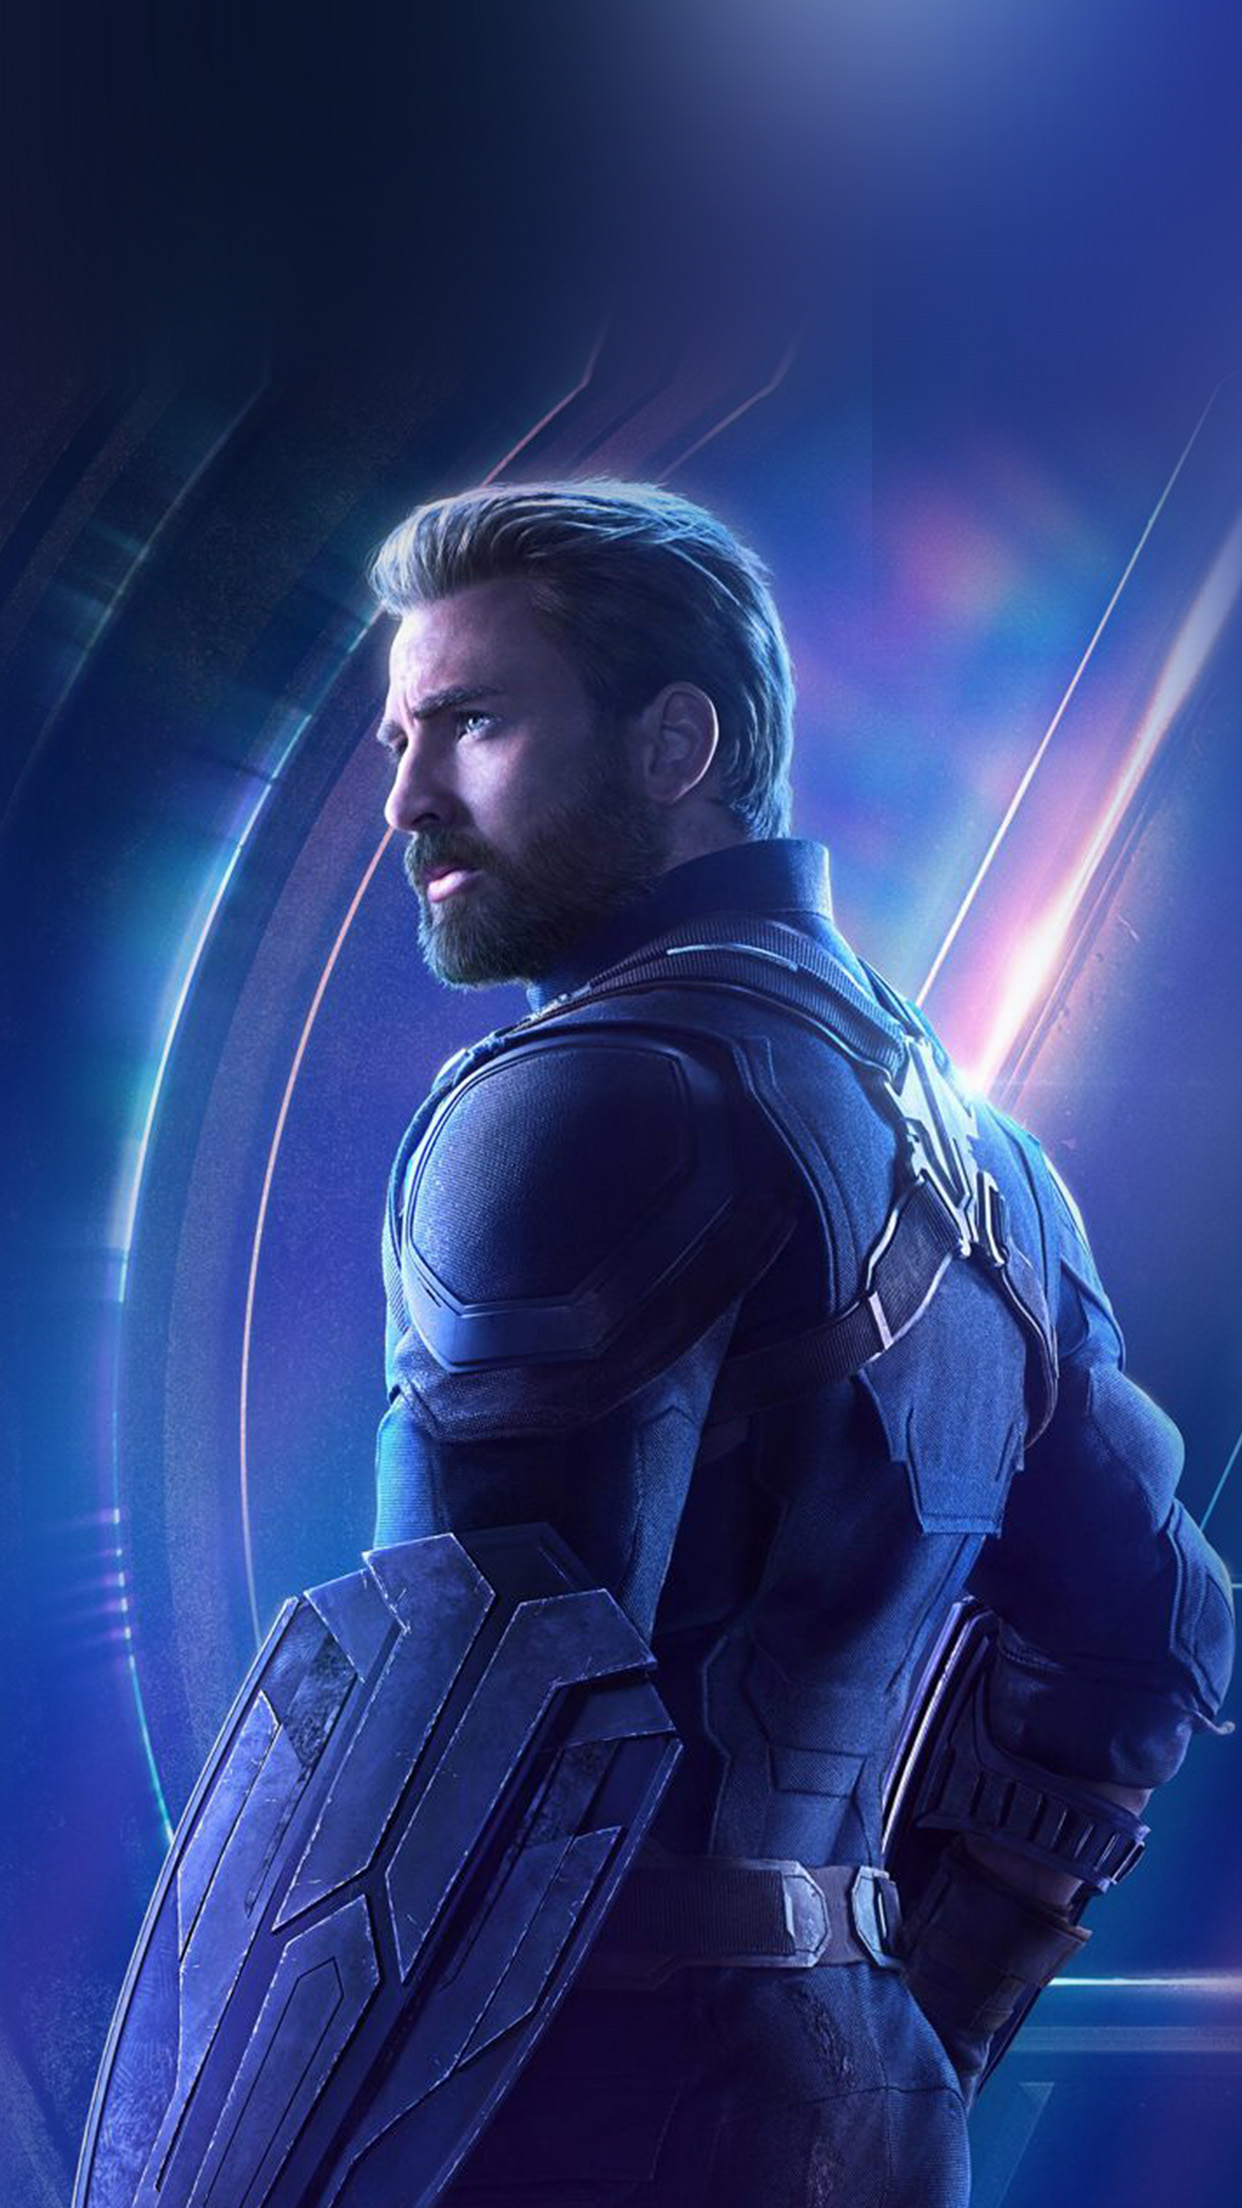 be86-captain-america-avengers-hero-chris-evans-film-art